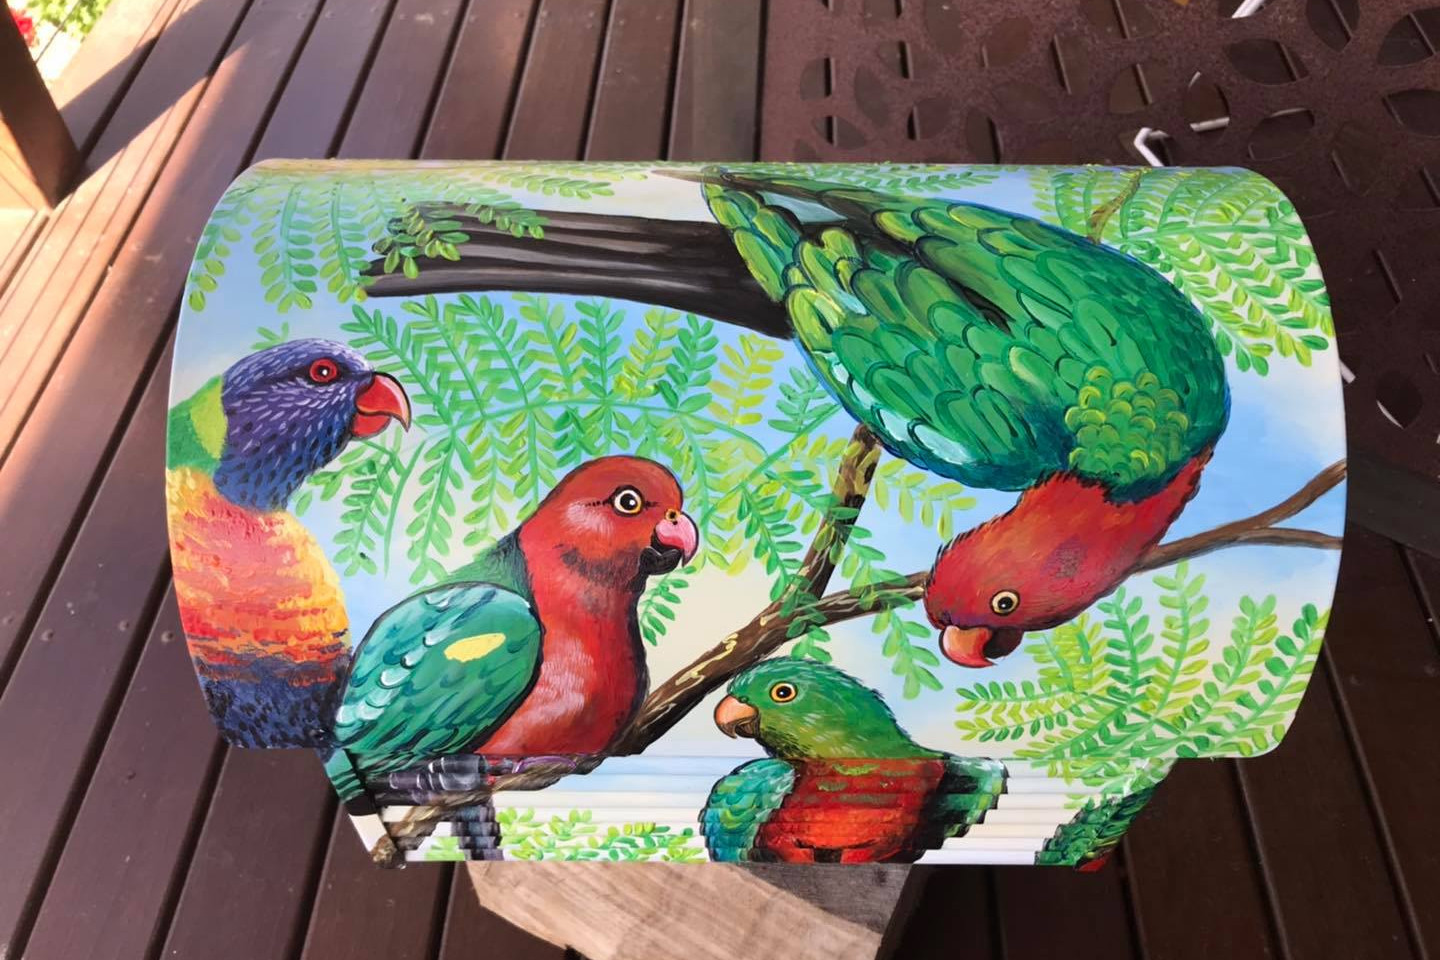 Parrots and lorikeets 5.jpg